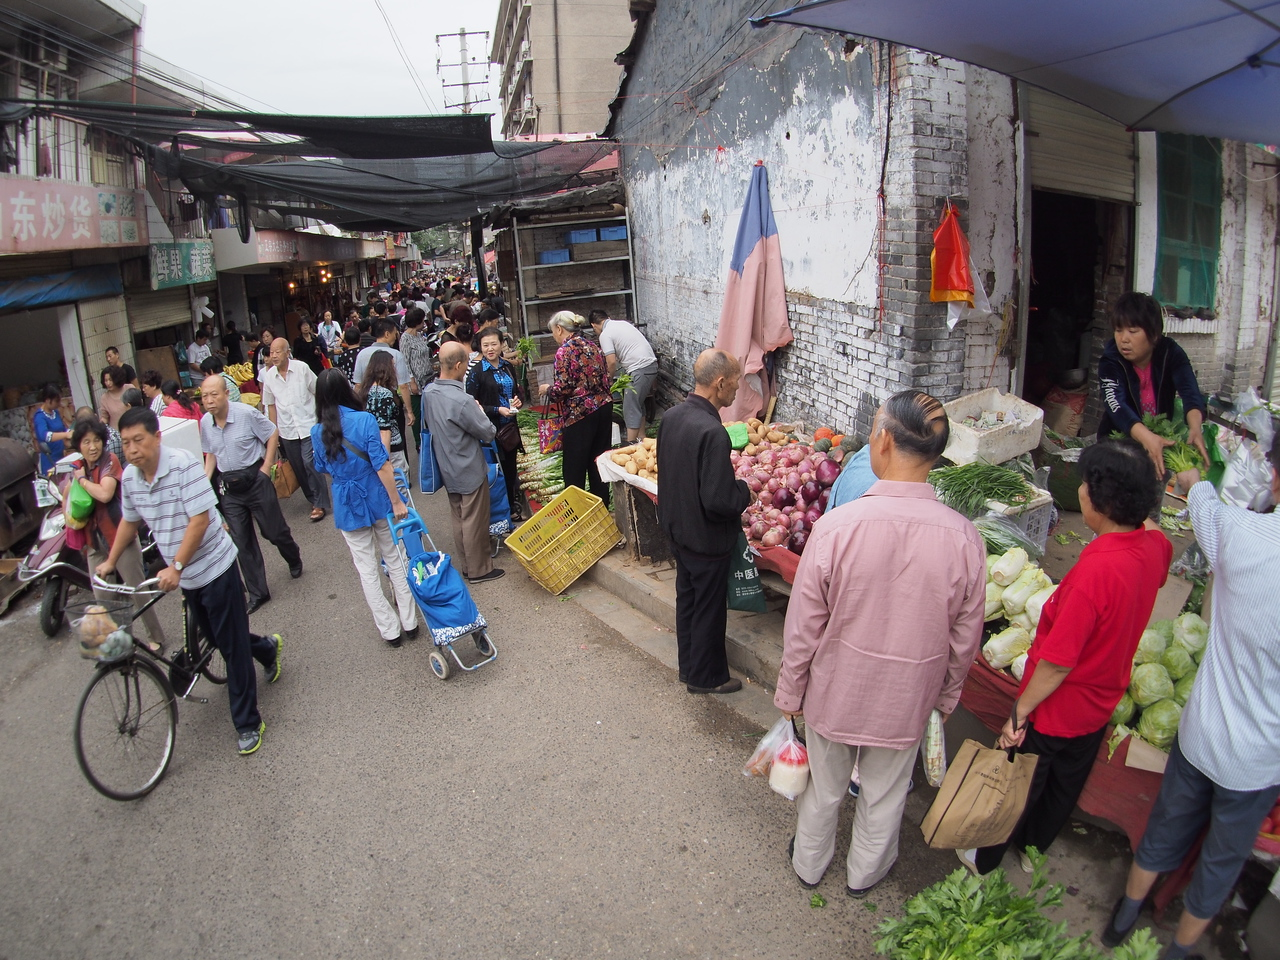 20150913_0846_1803 Sunday morning markets, inside the city wall of Xi'an